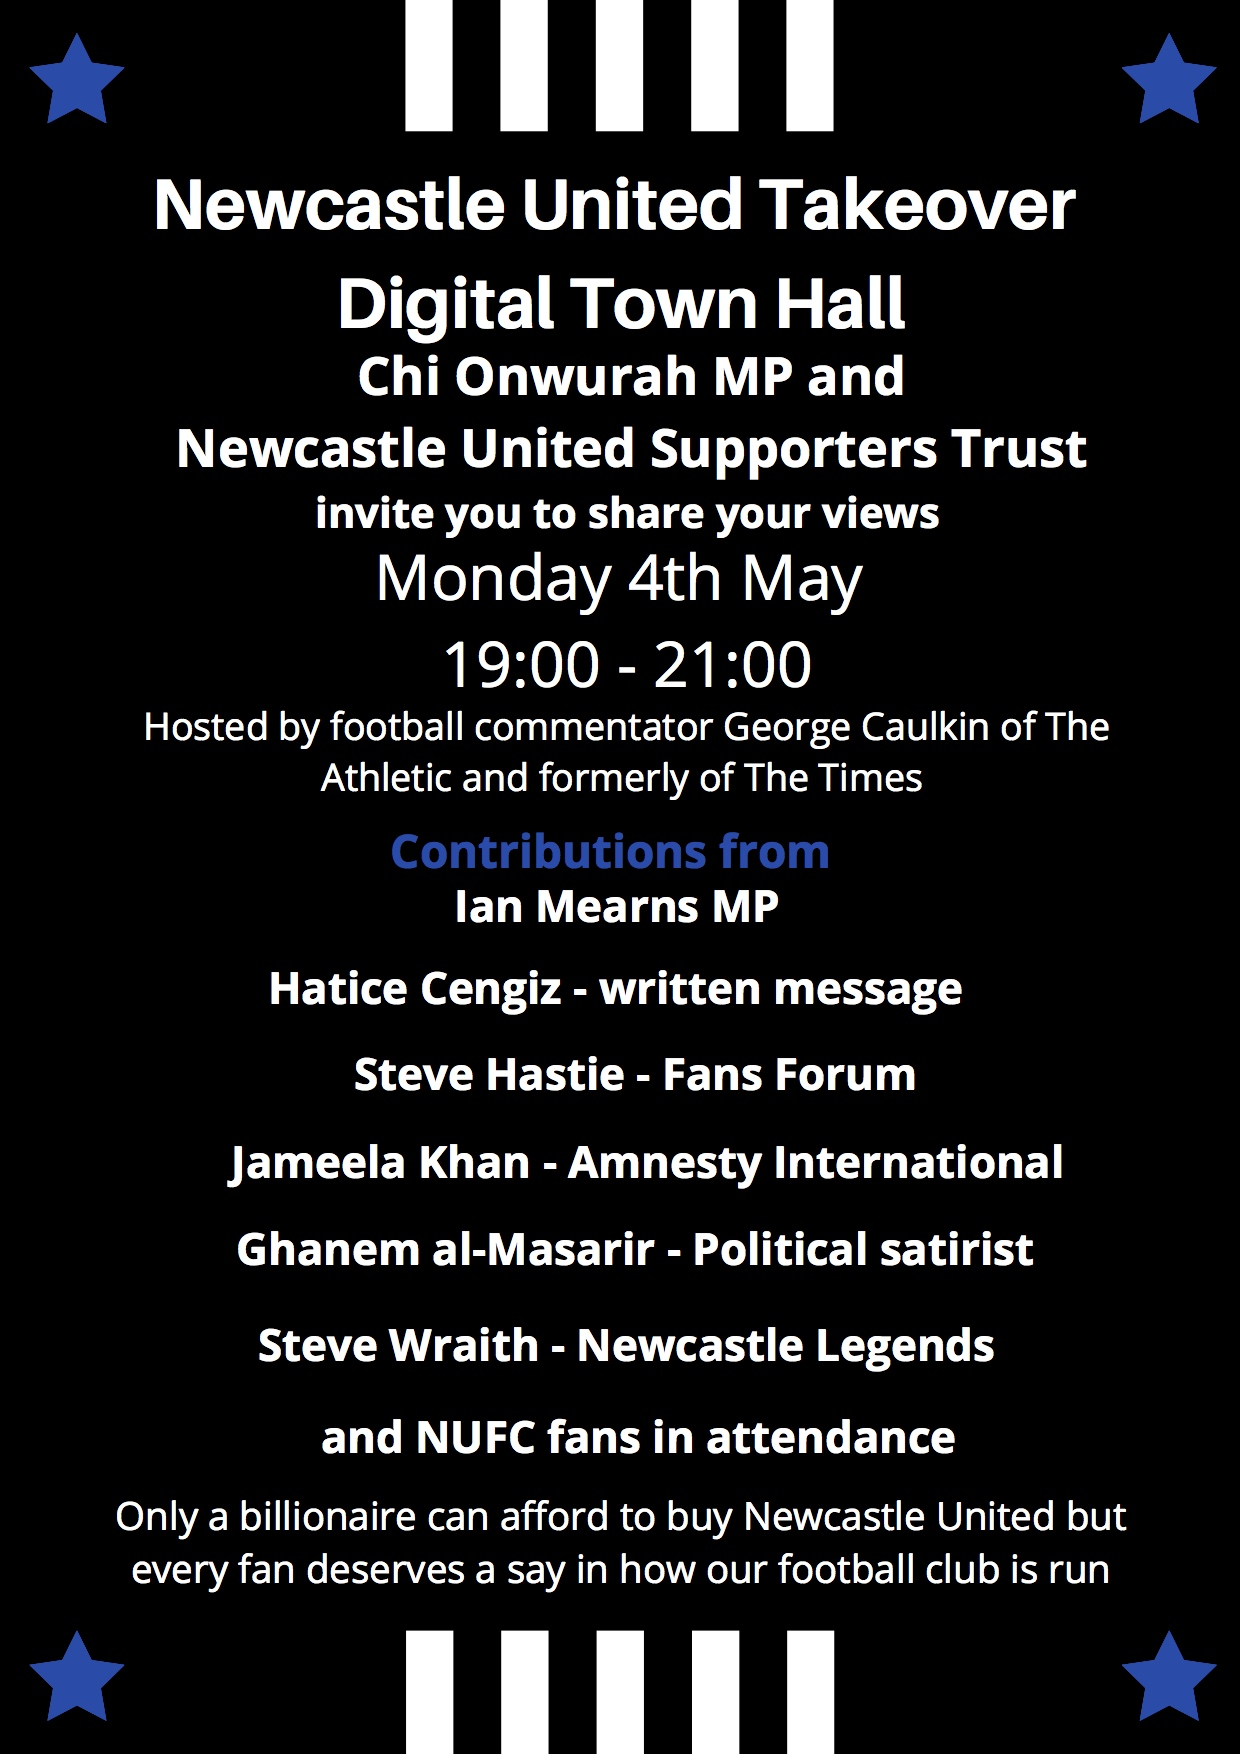 #ToonTownHall now available in full on YouTube